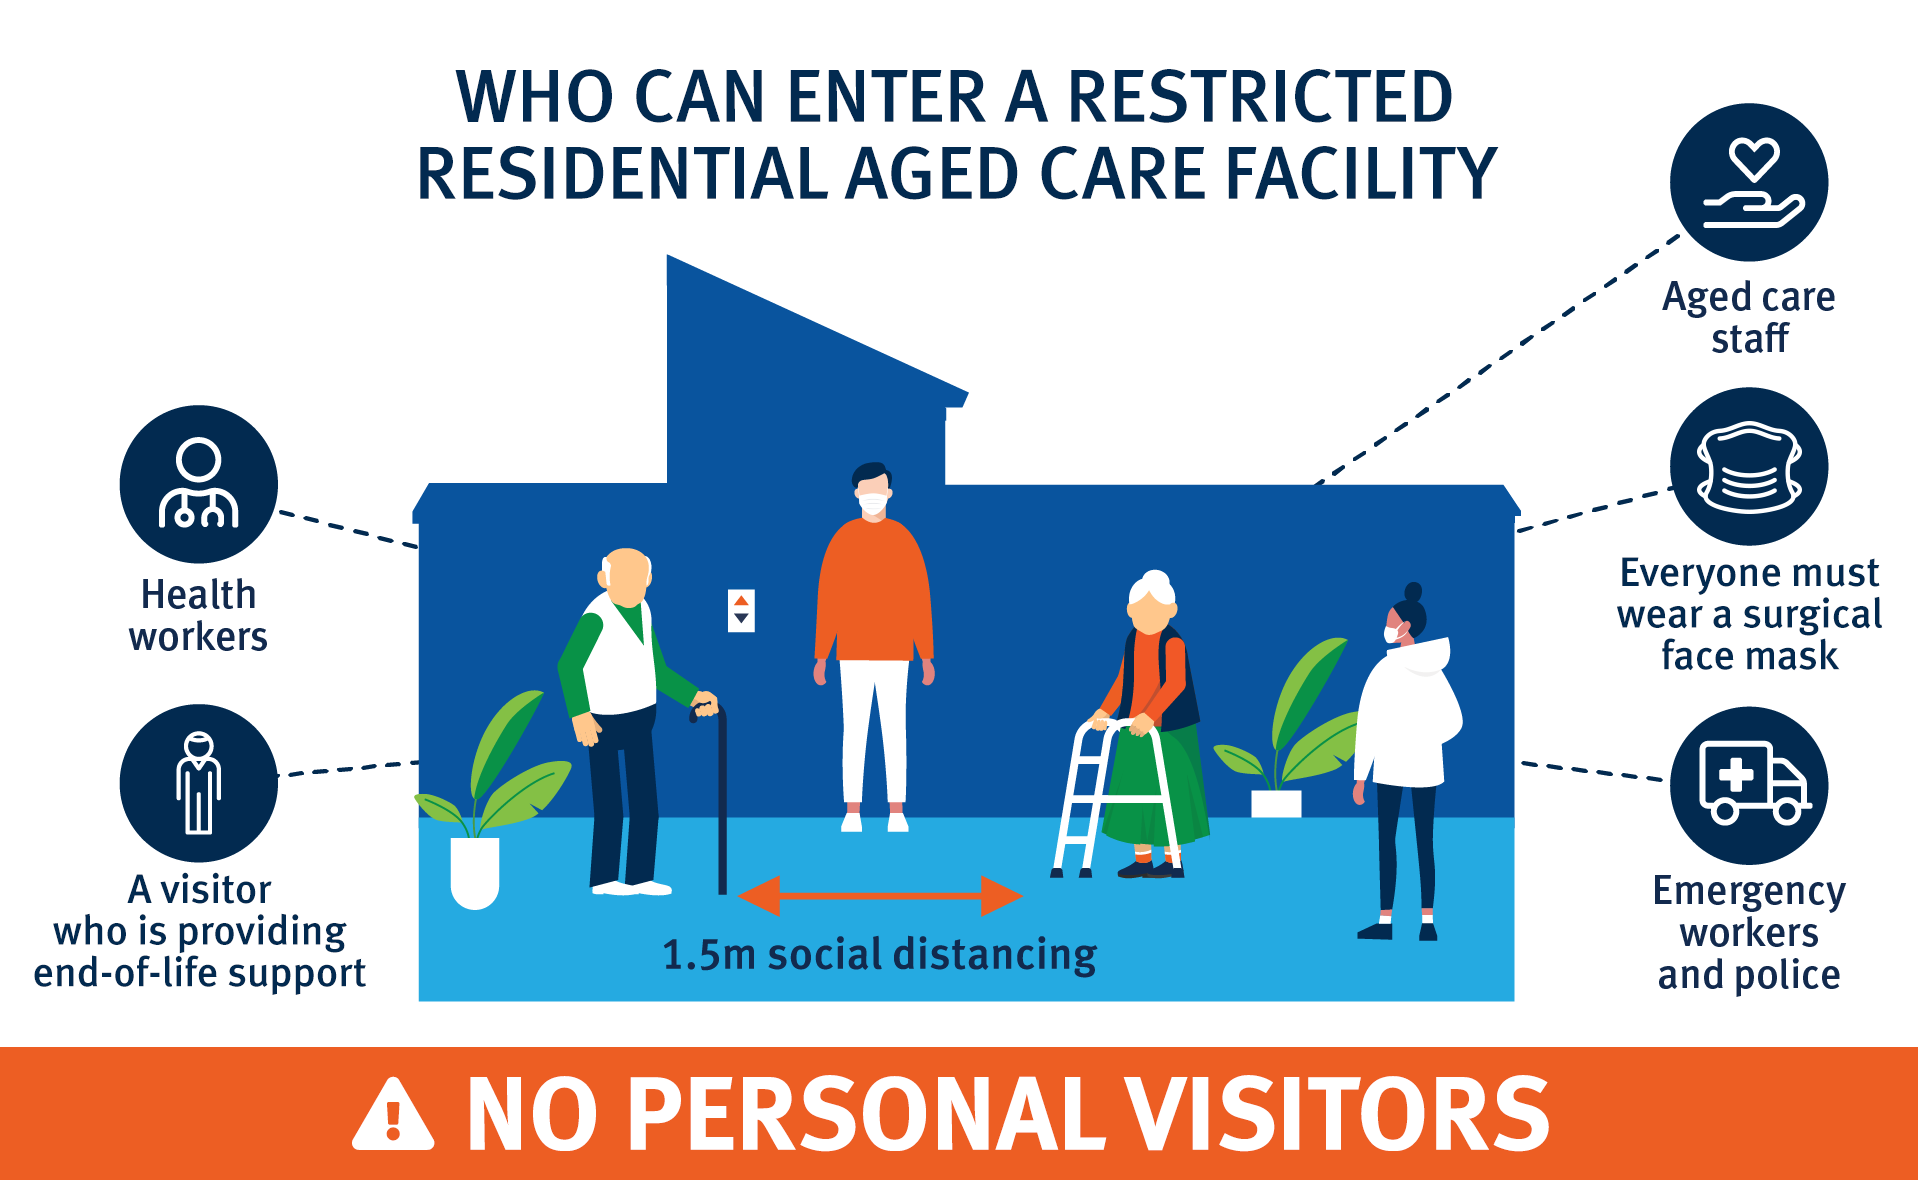 Graphi depicting who can enter a restricted residential aged care facility - Health workers, A visitor who is providing end-of-life support, aged care staff, and emergency workers and police. Everyone must wear a surgical face mask.